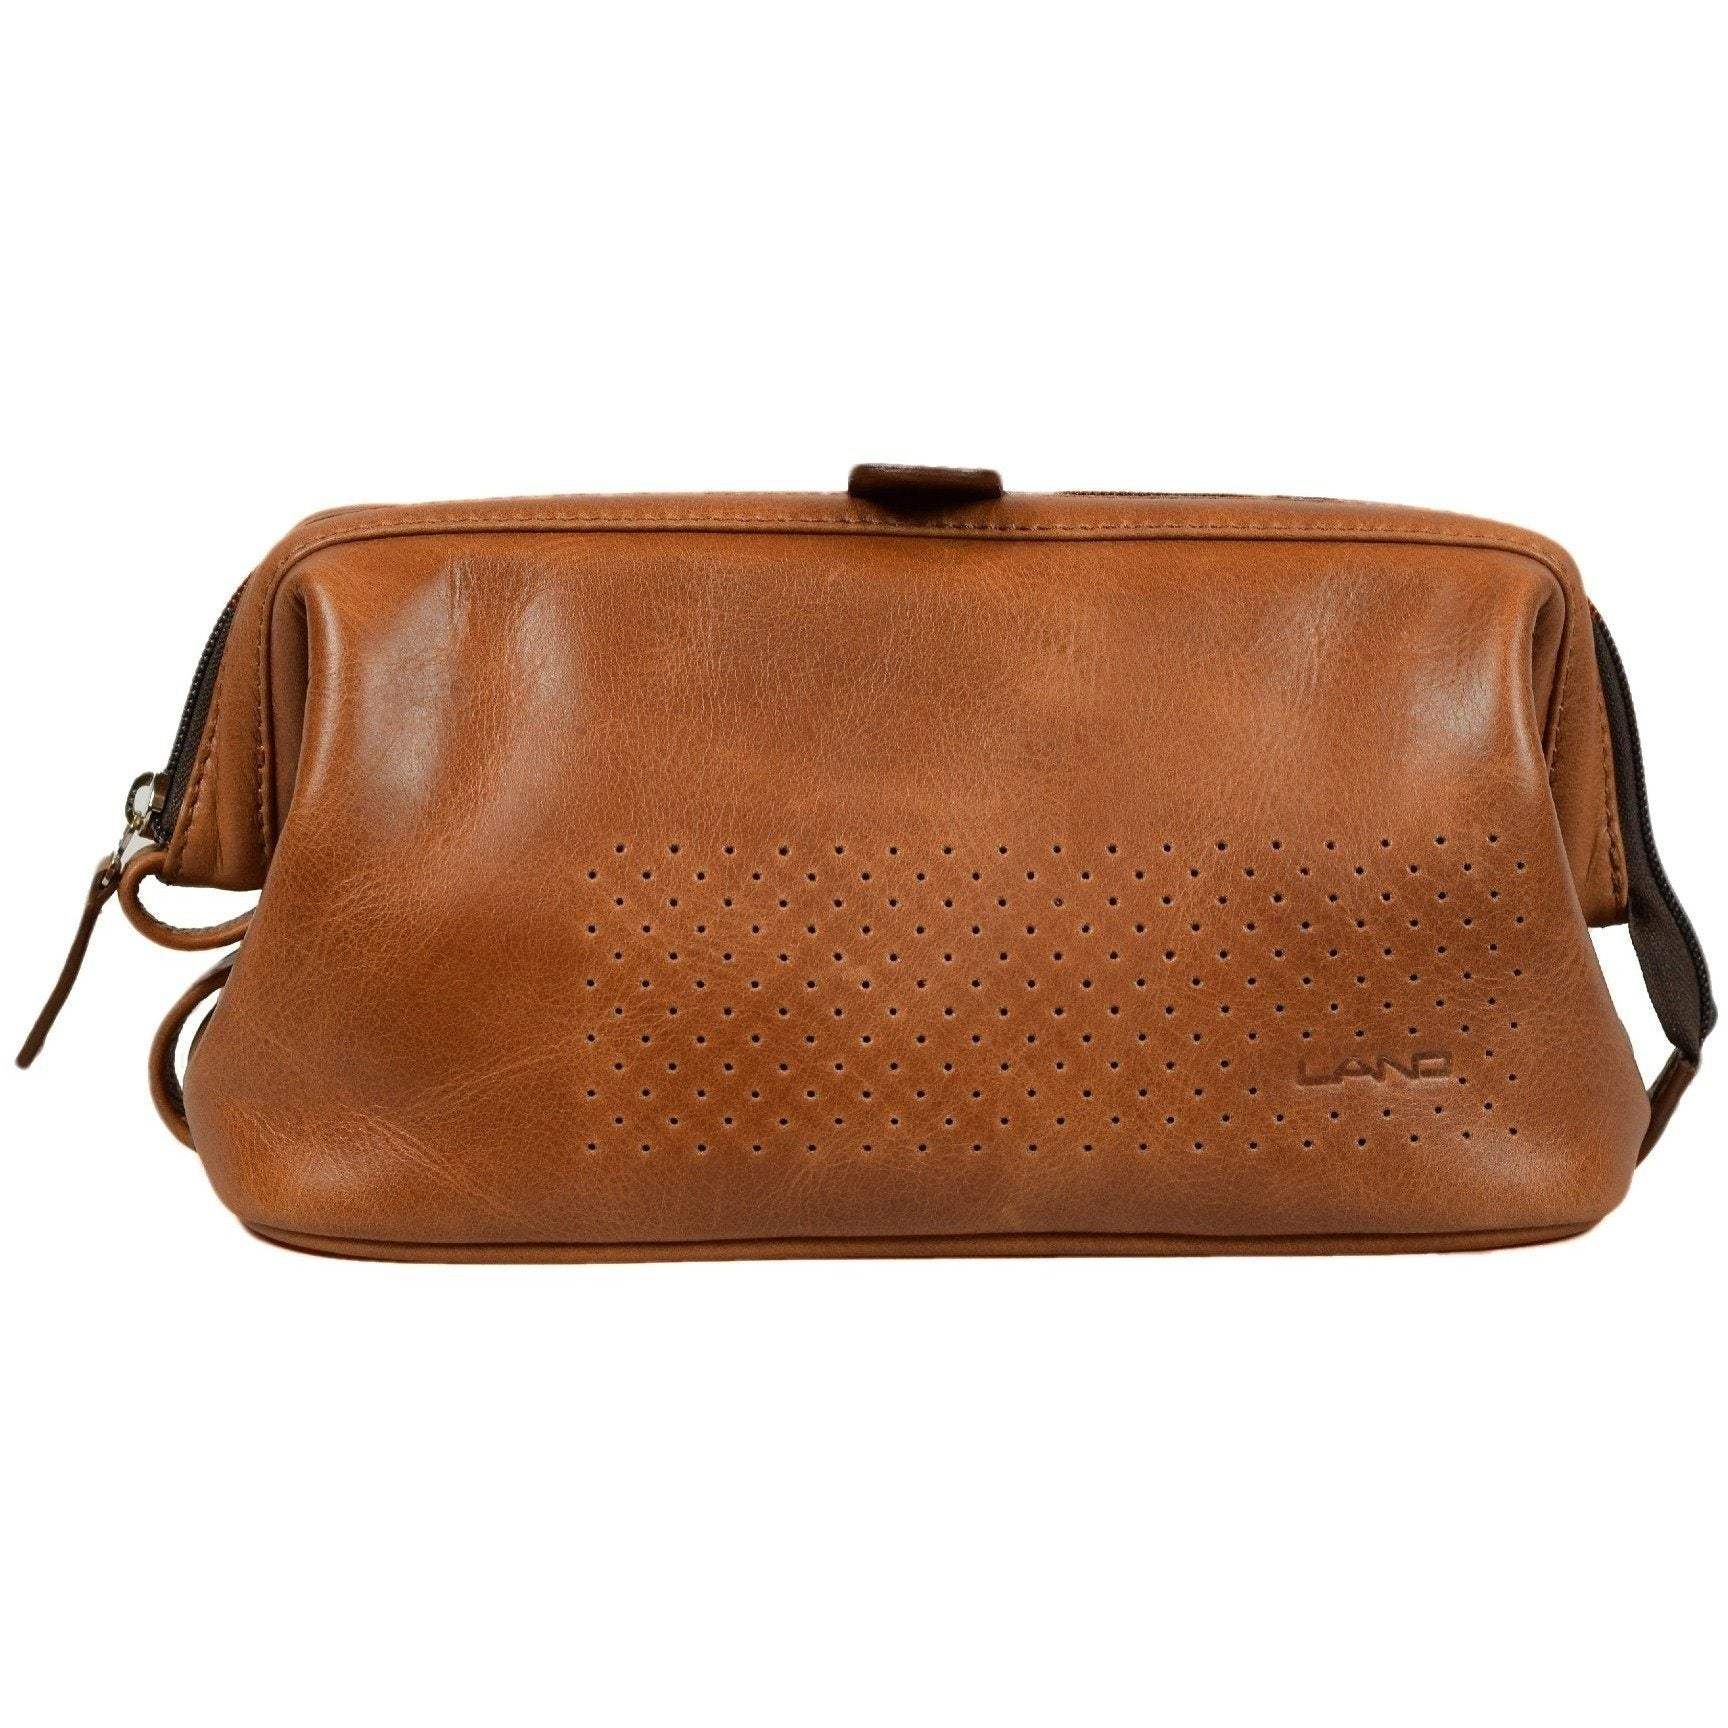 DuPont Dopp Kit, Toiletry Bag | LAND Leather